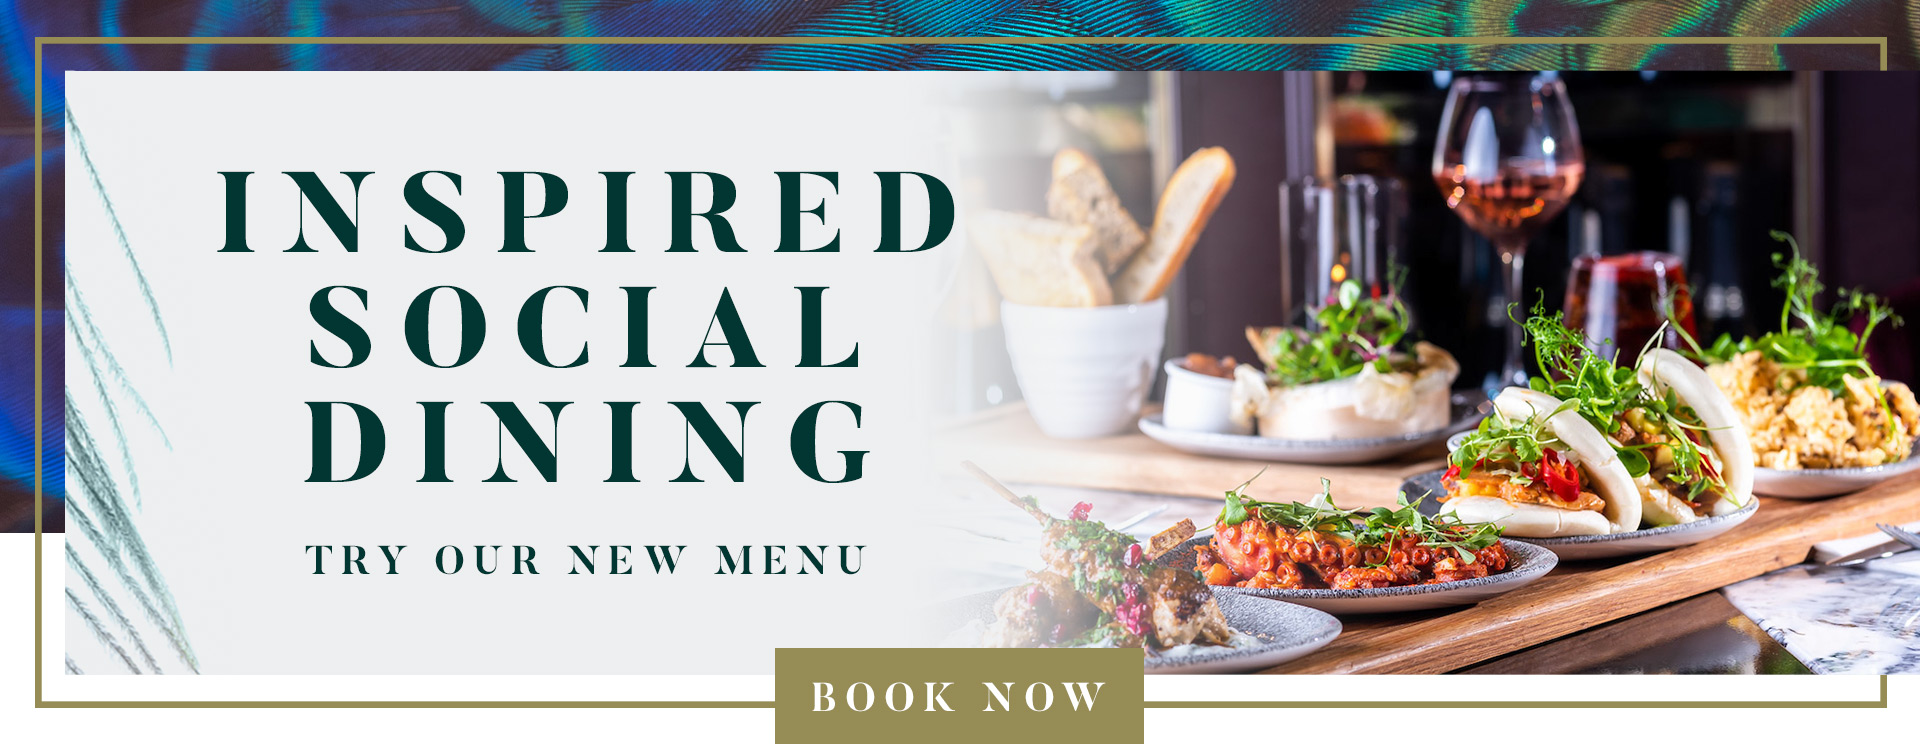 Seasonal must have dishes at The Prince of Wales - Book Now